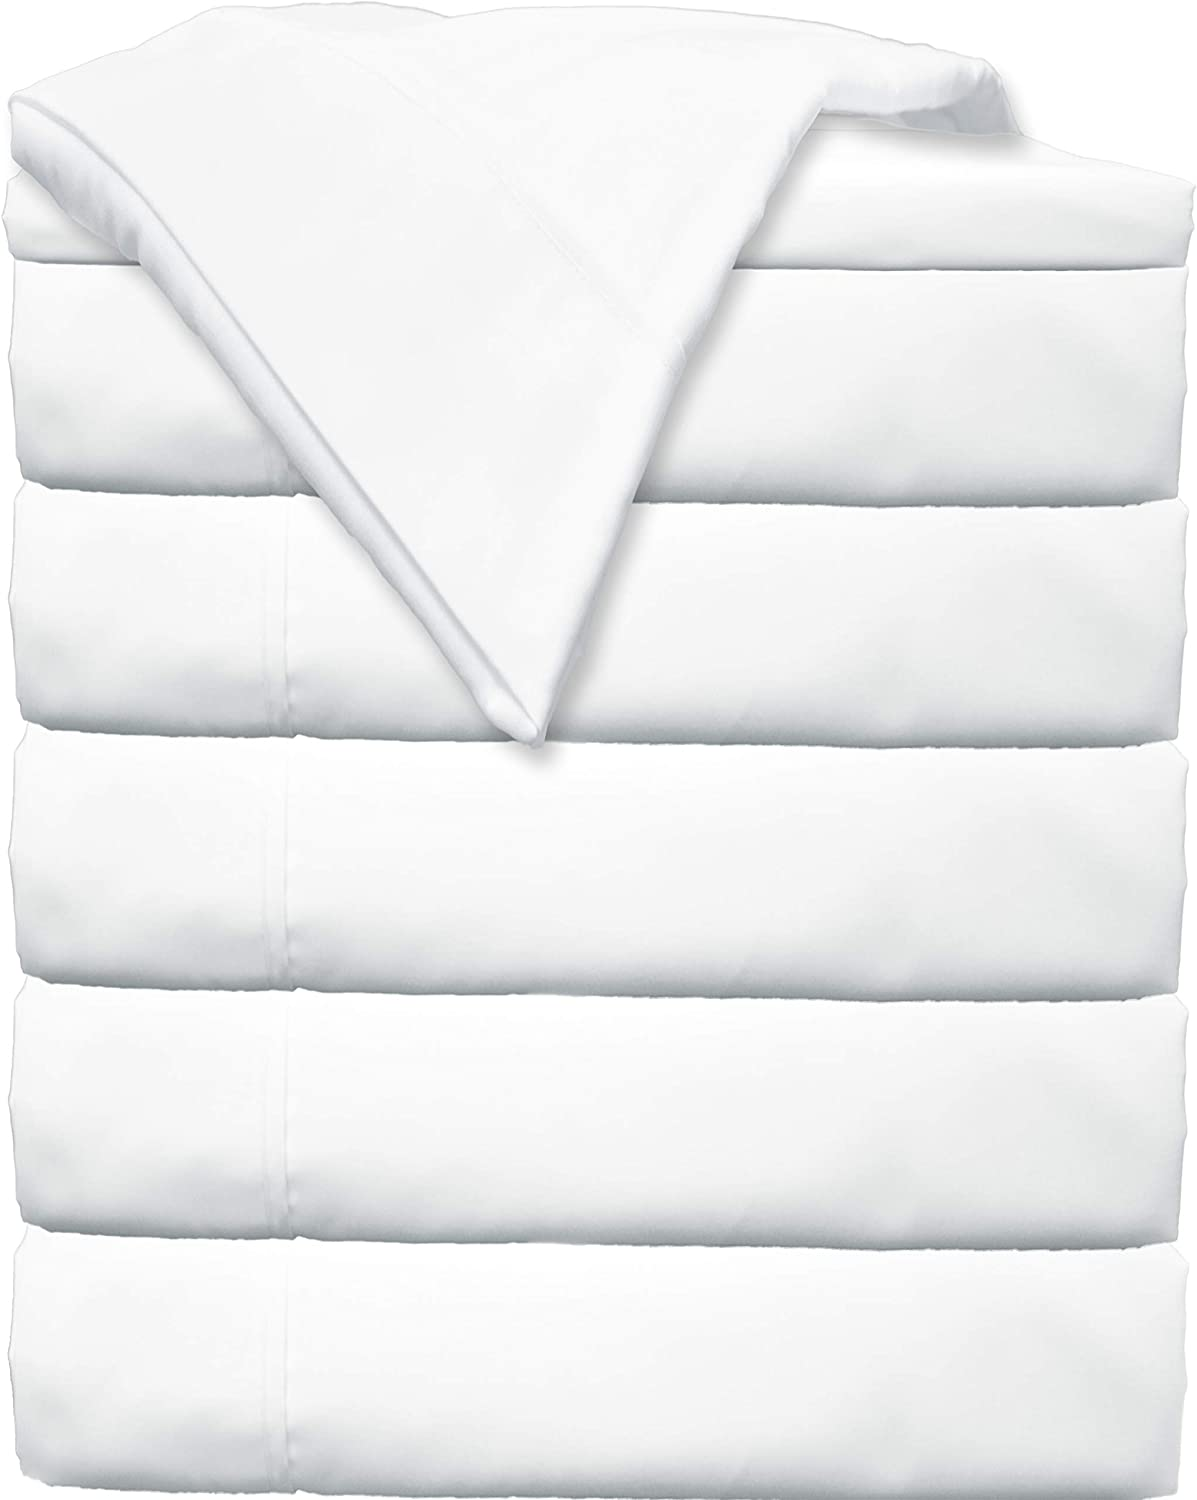 Glarea Bed Flat Sheets 6 Pack (Twin, White) - Soft Brushed Microfiber Bedding for Blissful Sleep